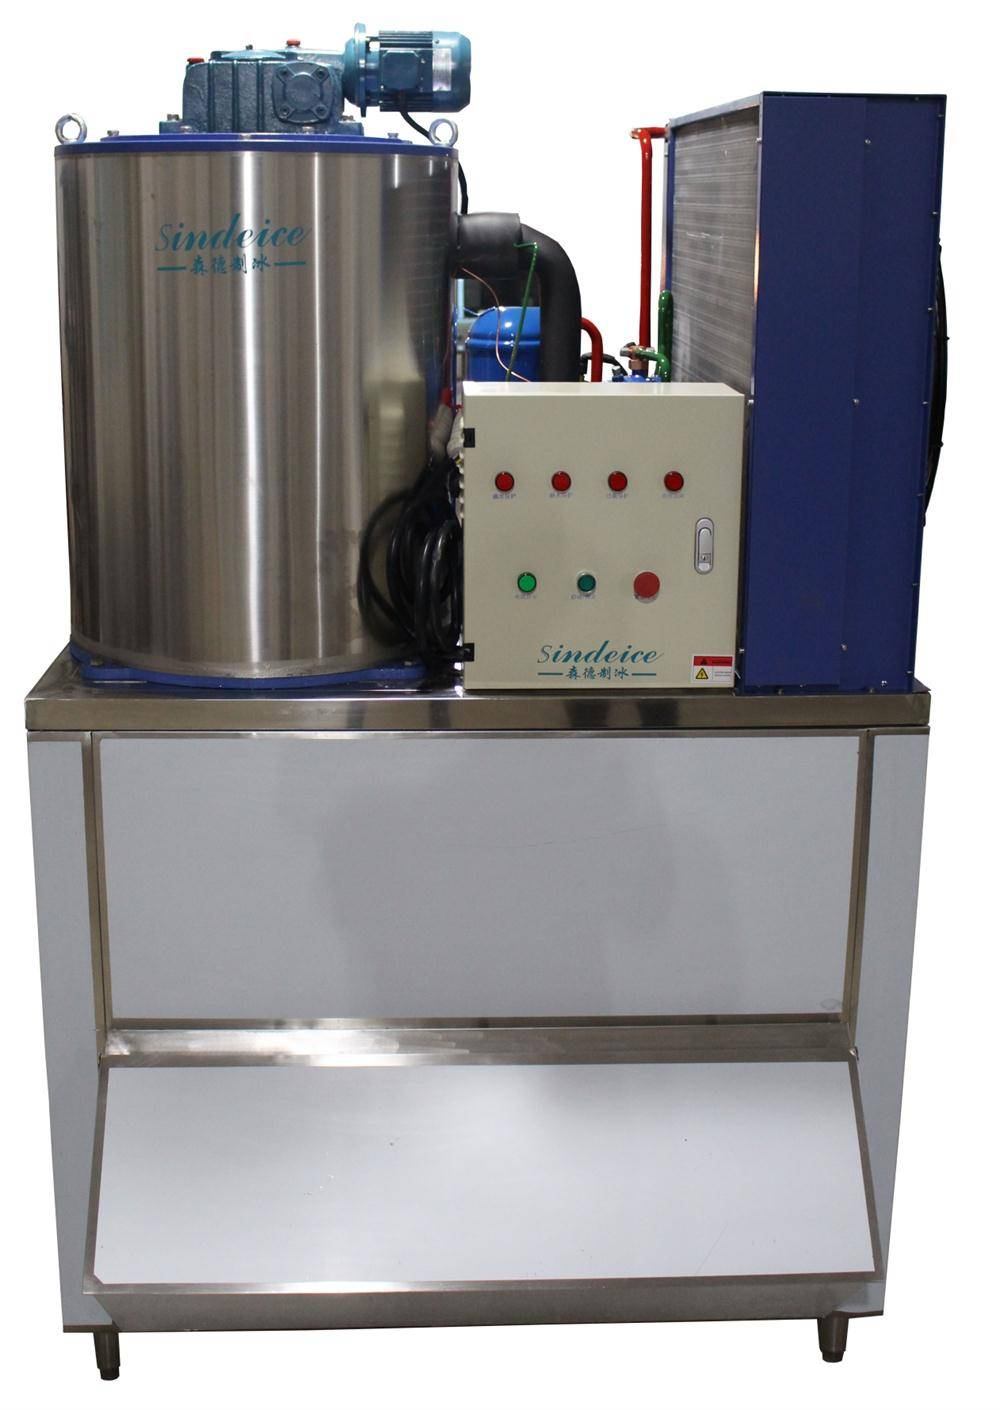 SINDEICE small range 2T/24h flake ice making machine